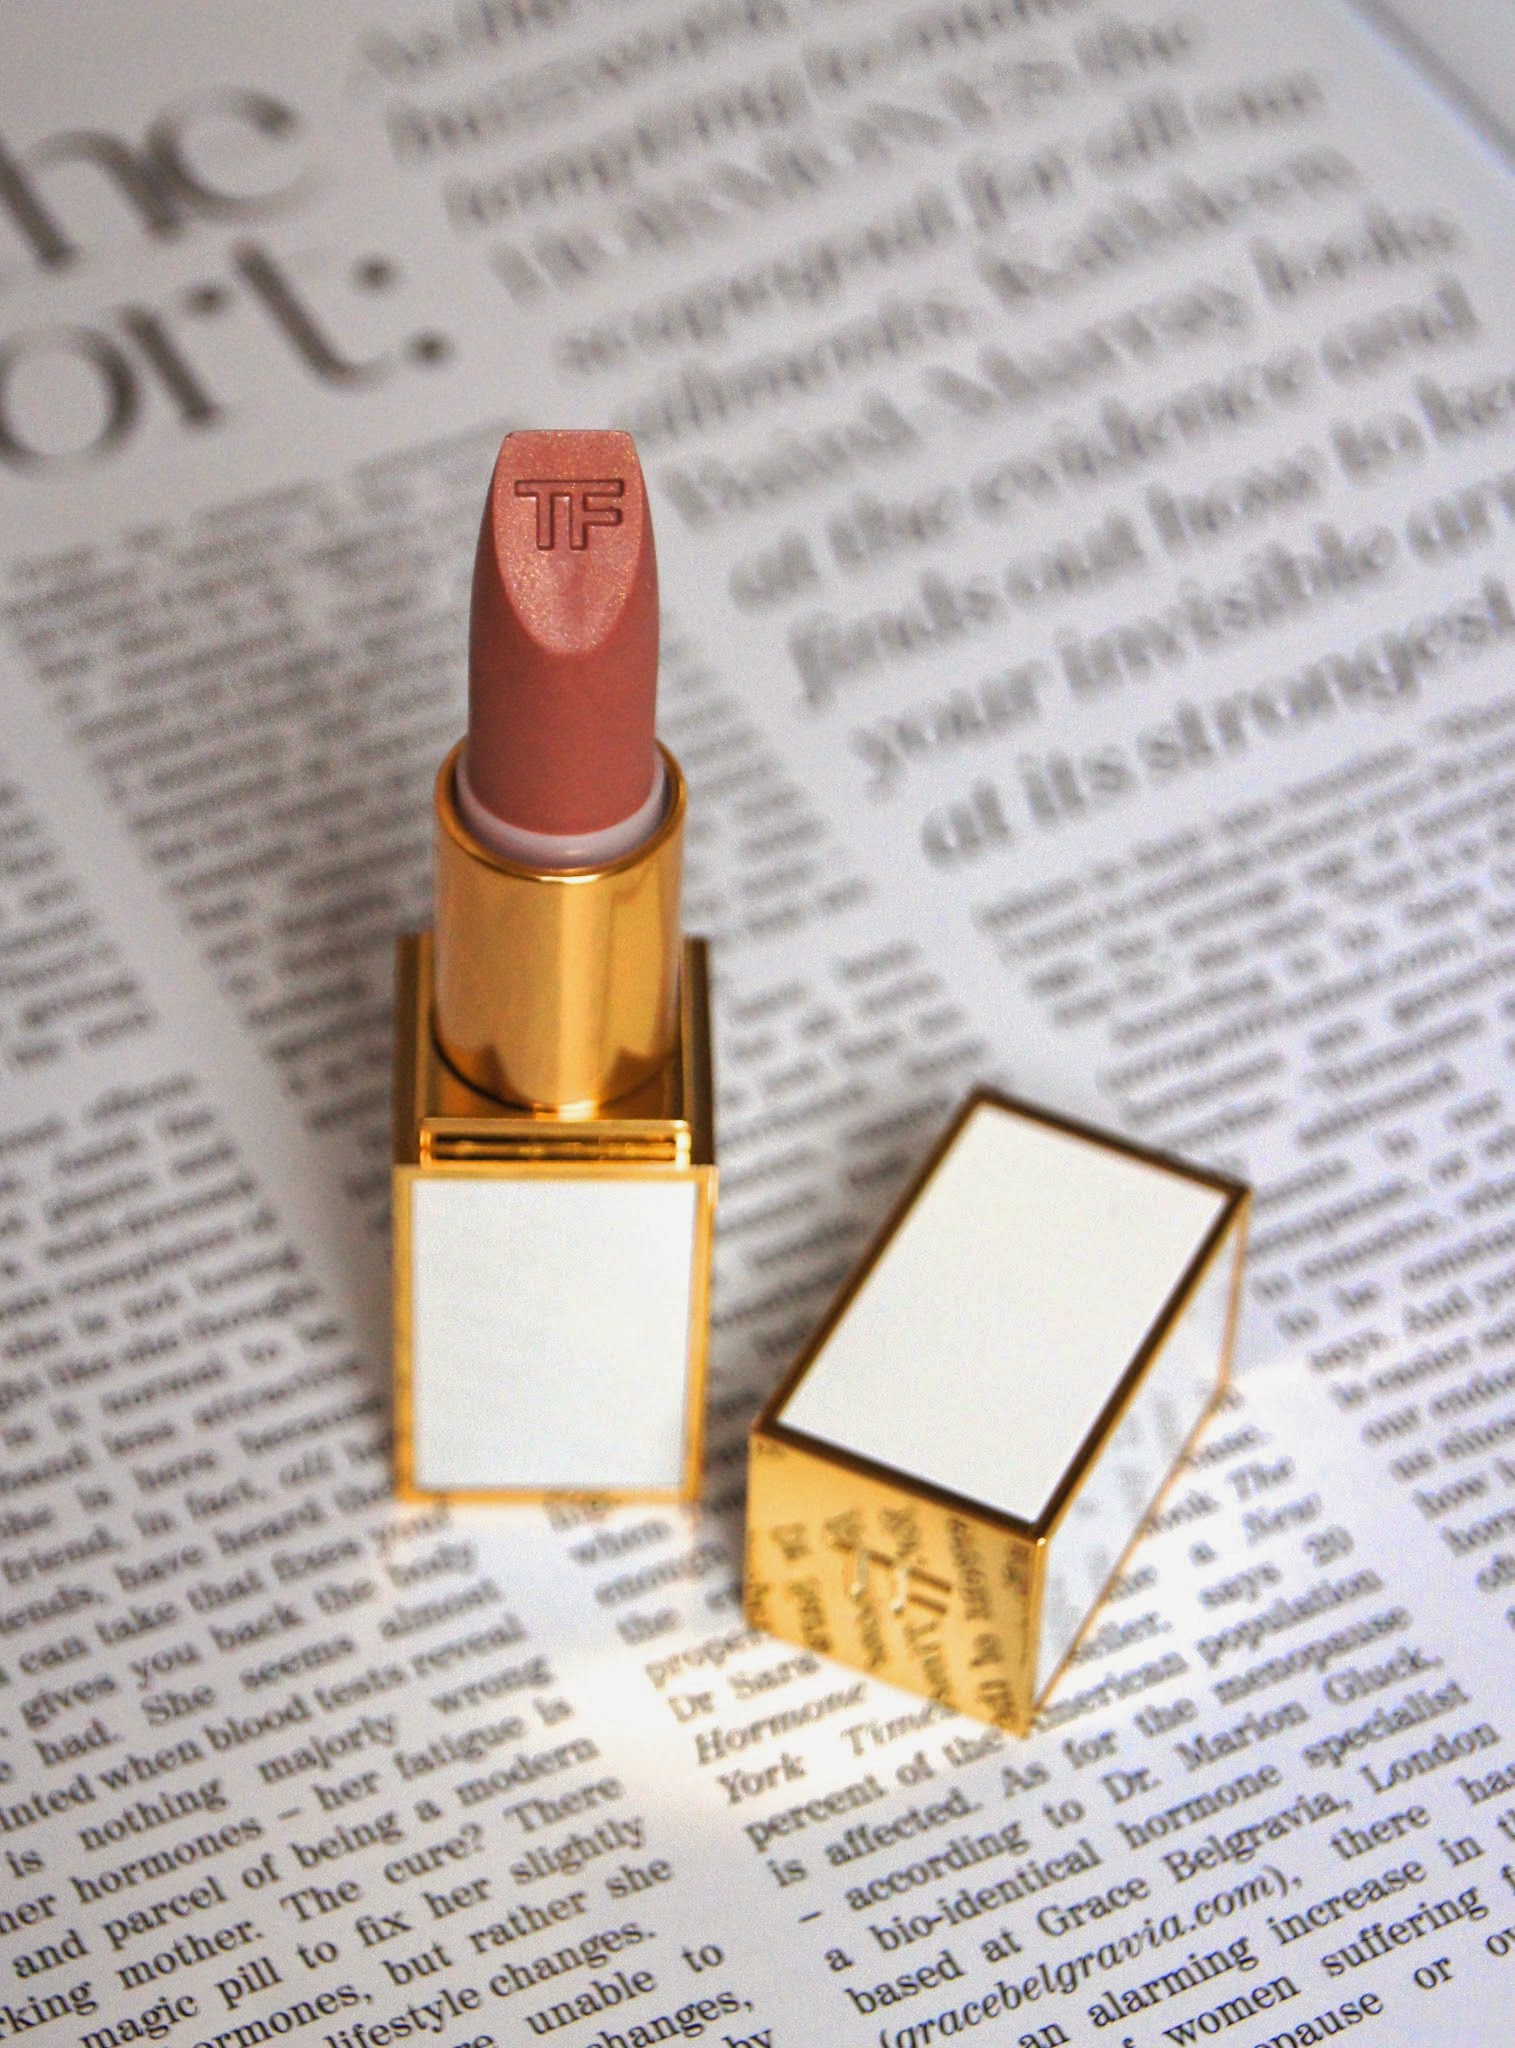 tom ford color sheer lip colour lipstick review swatch 01 in the buff